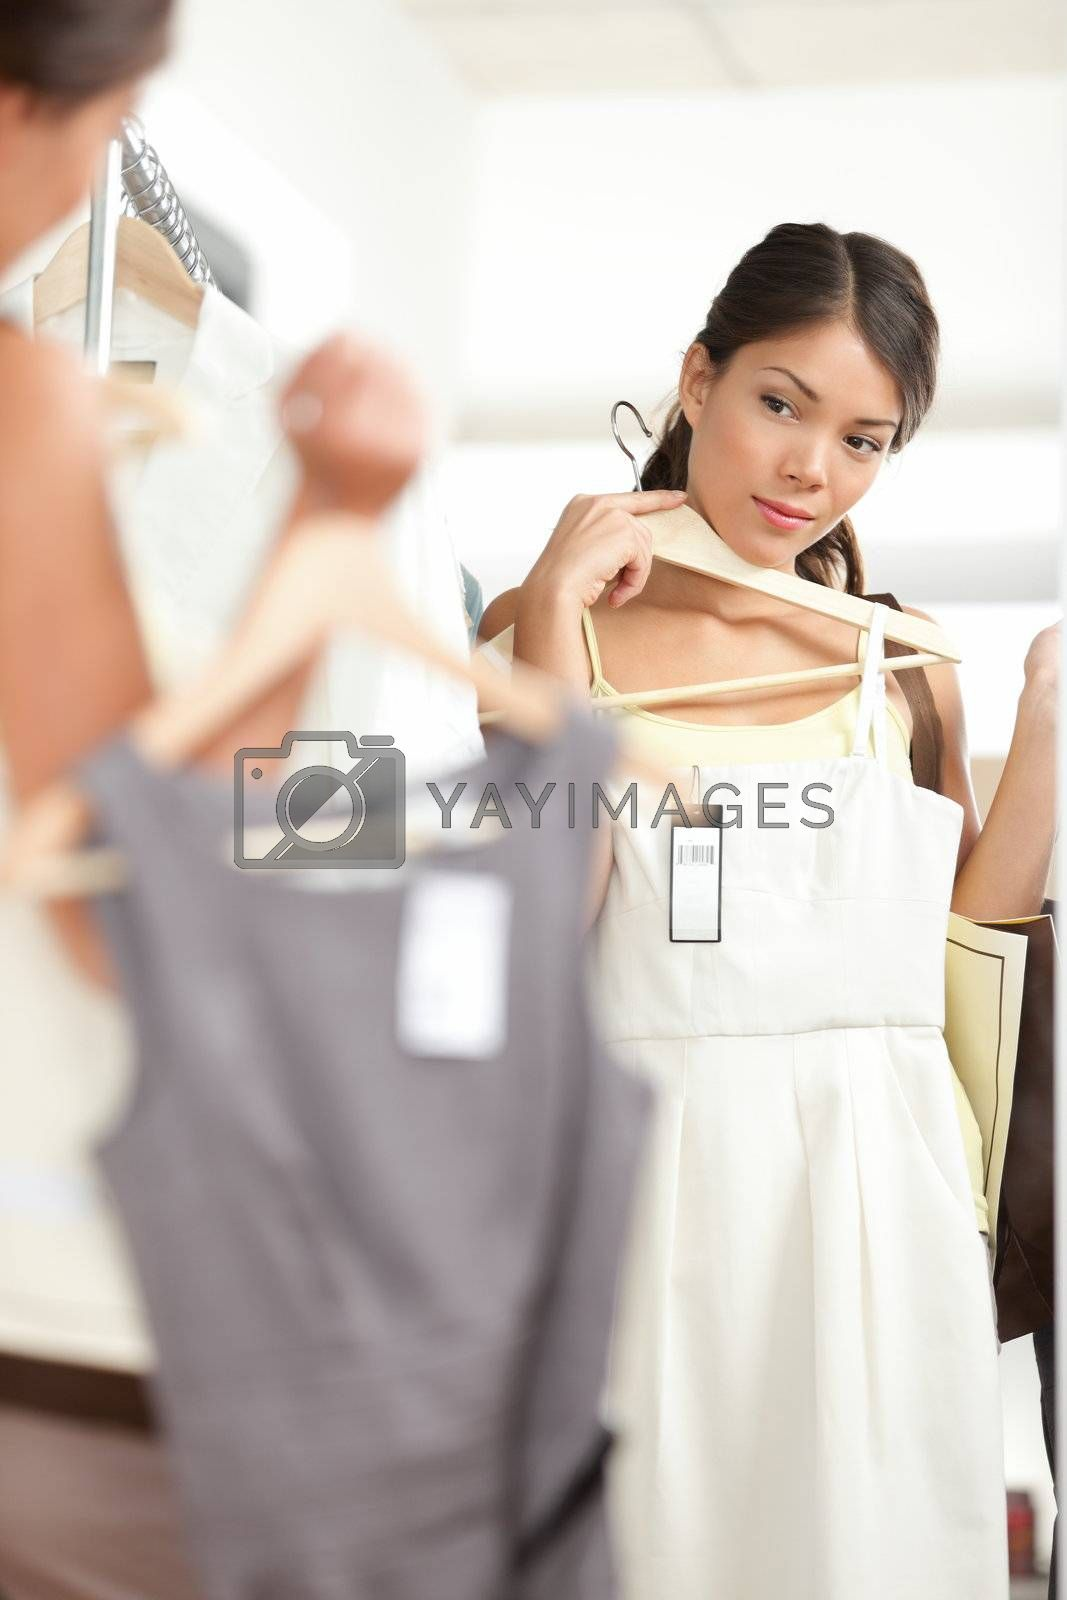 Woman shopping choosing dresses looking in mirror uncertain. Beautiful young multicultural shopper in clothing store.